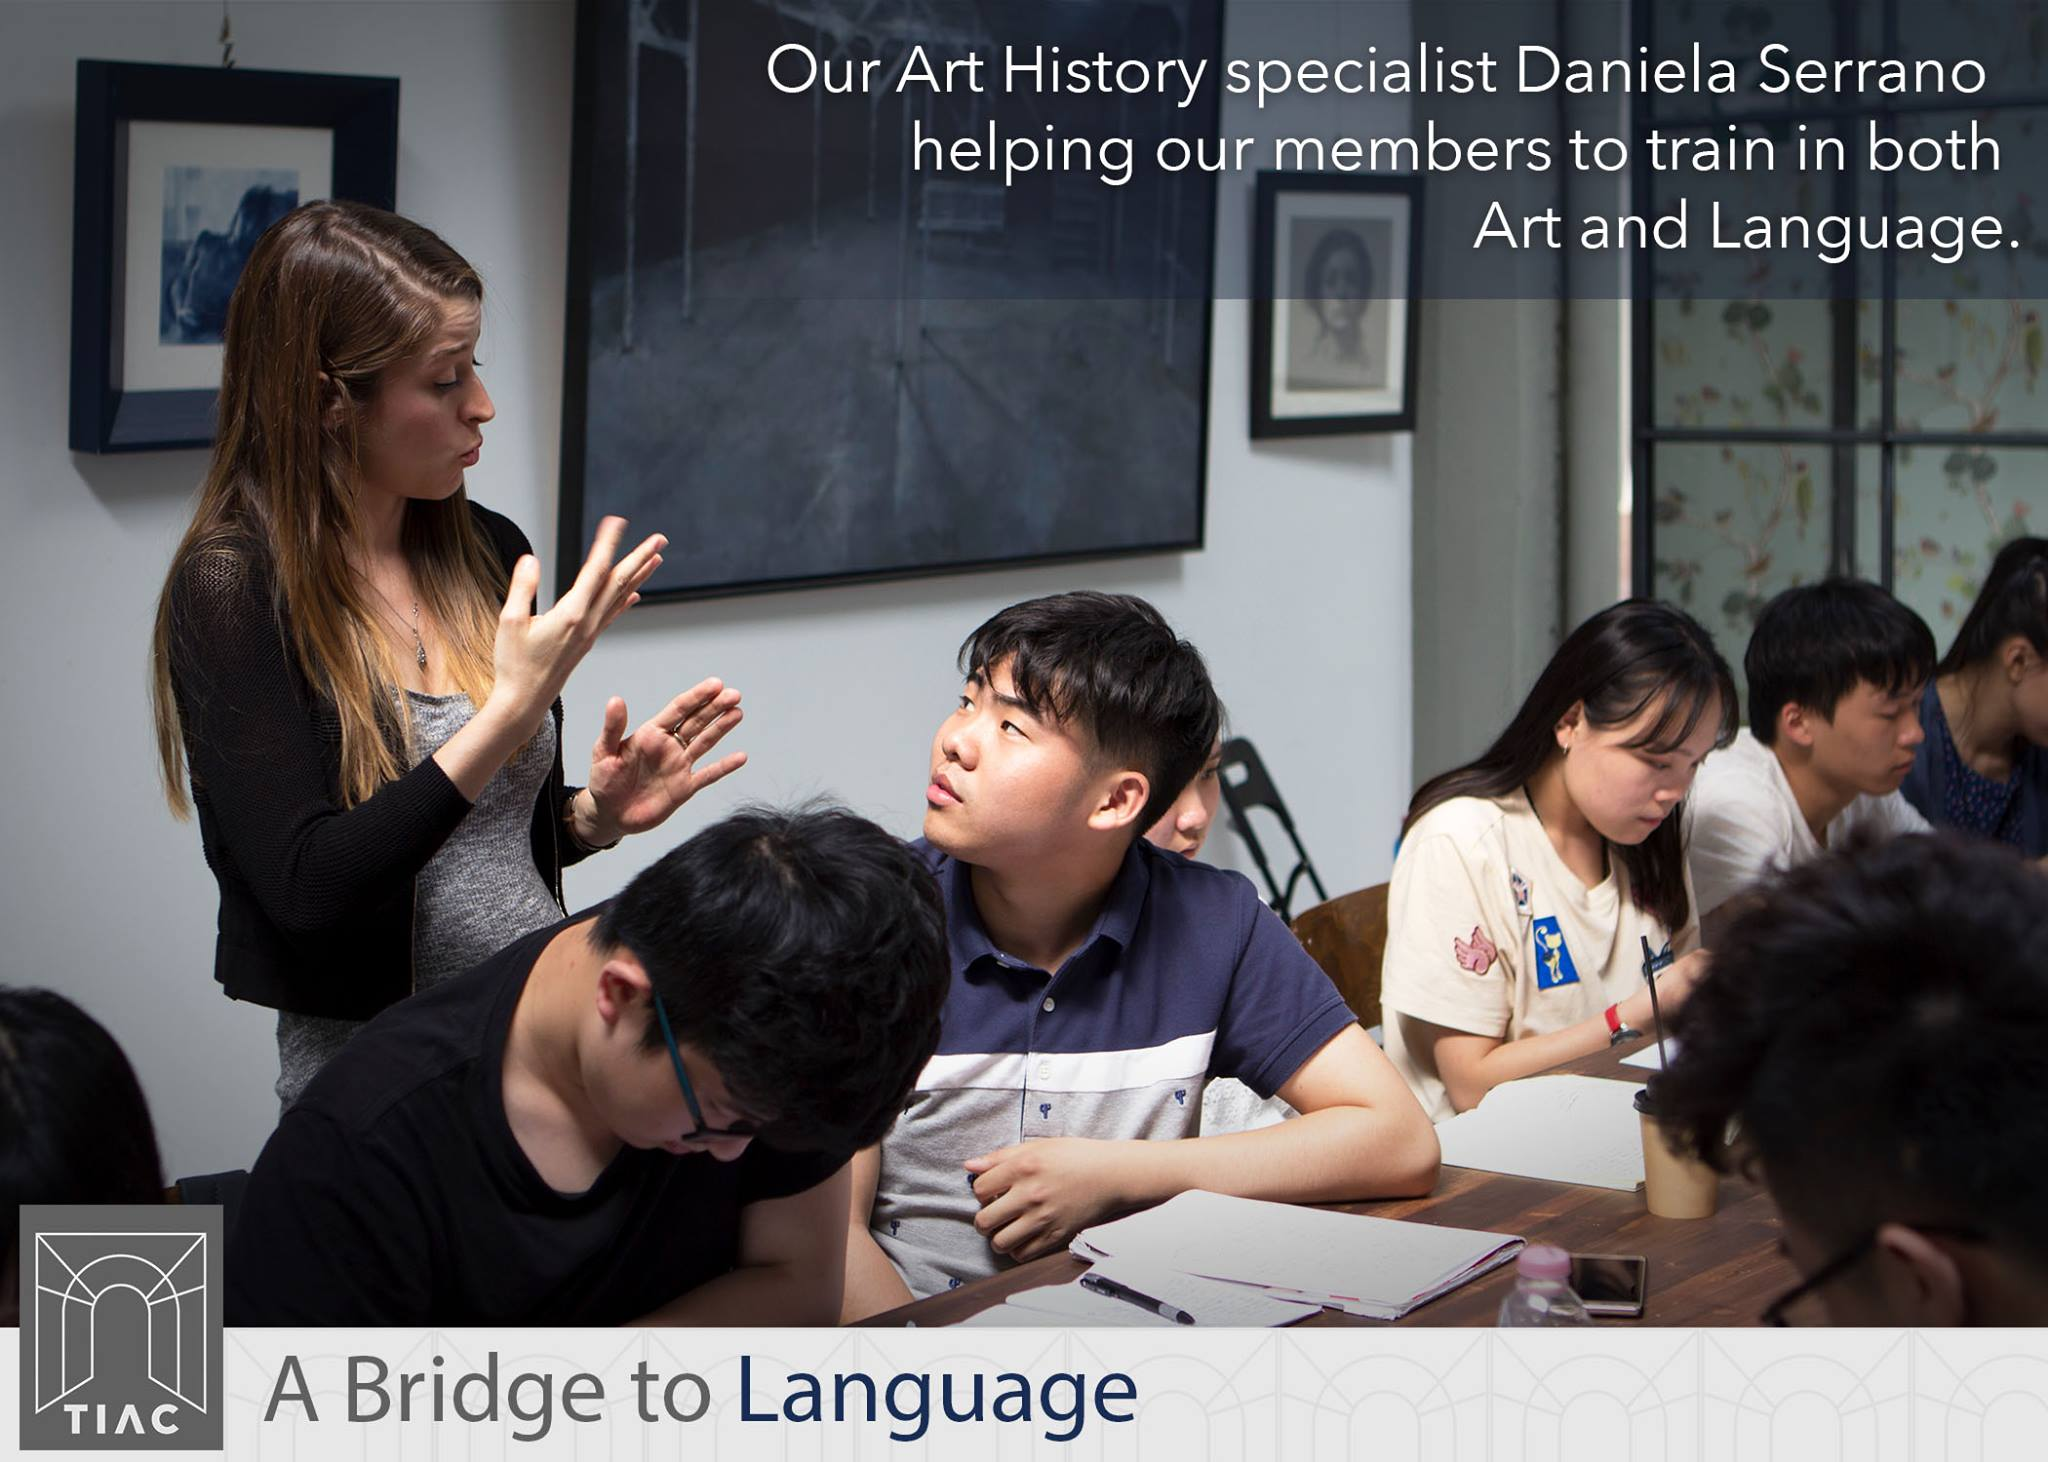 Daniella Serrano teaches Art History in Italian to exchange students from China, helping them to prepare for entry to Italian university